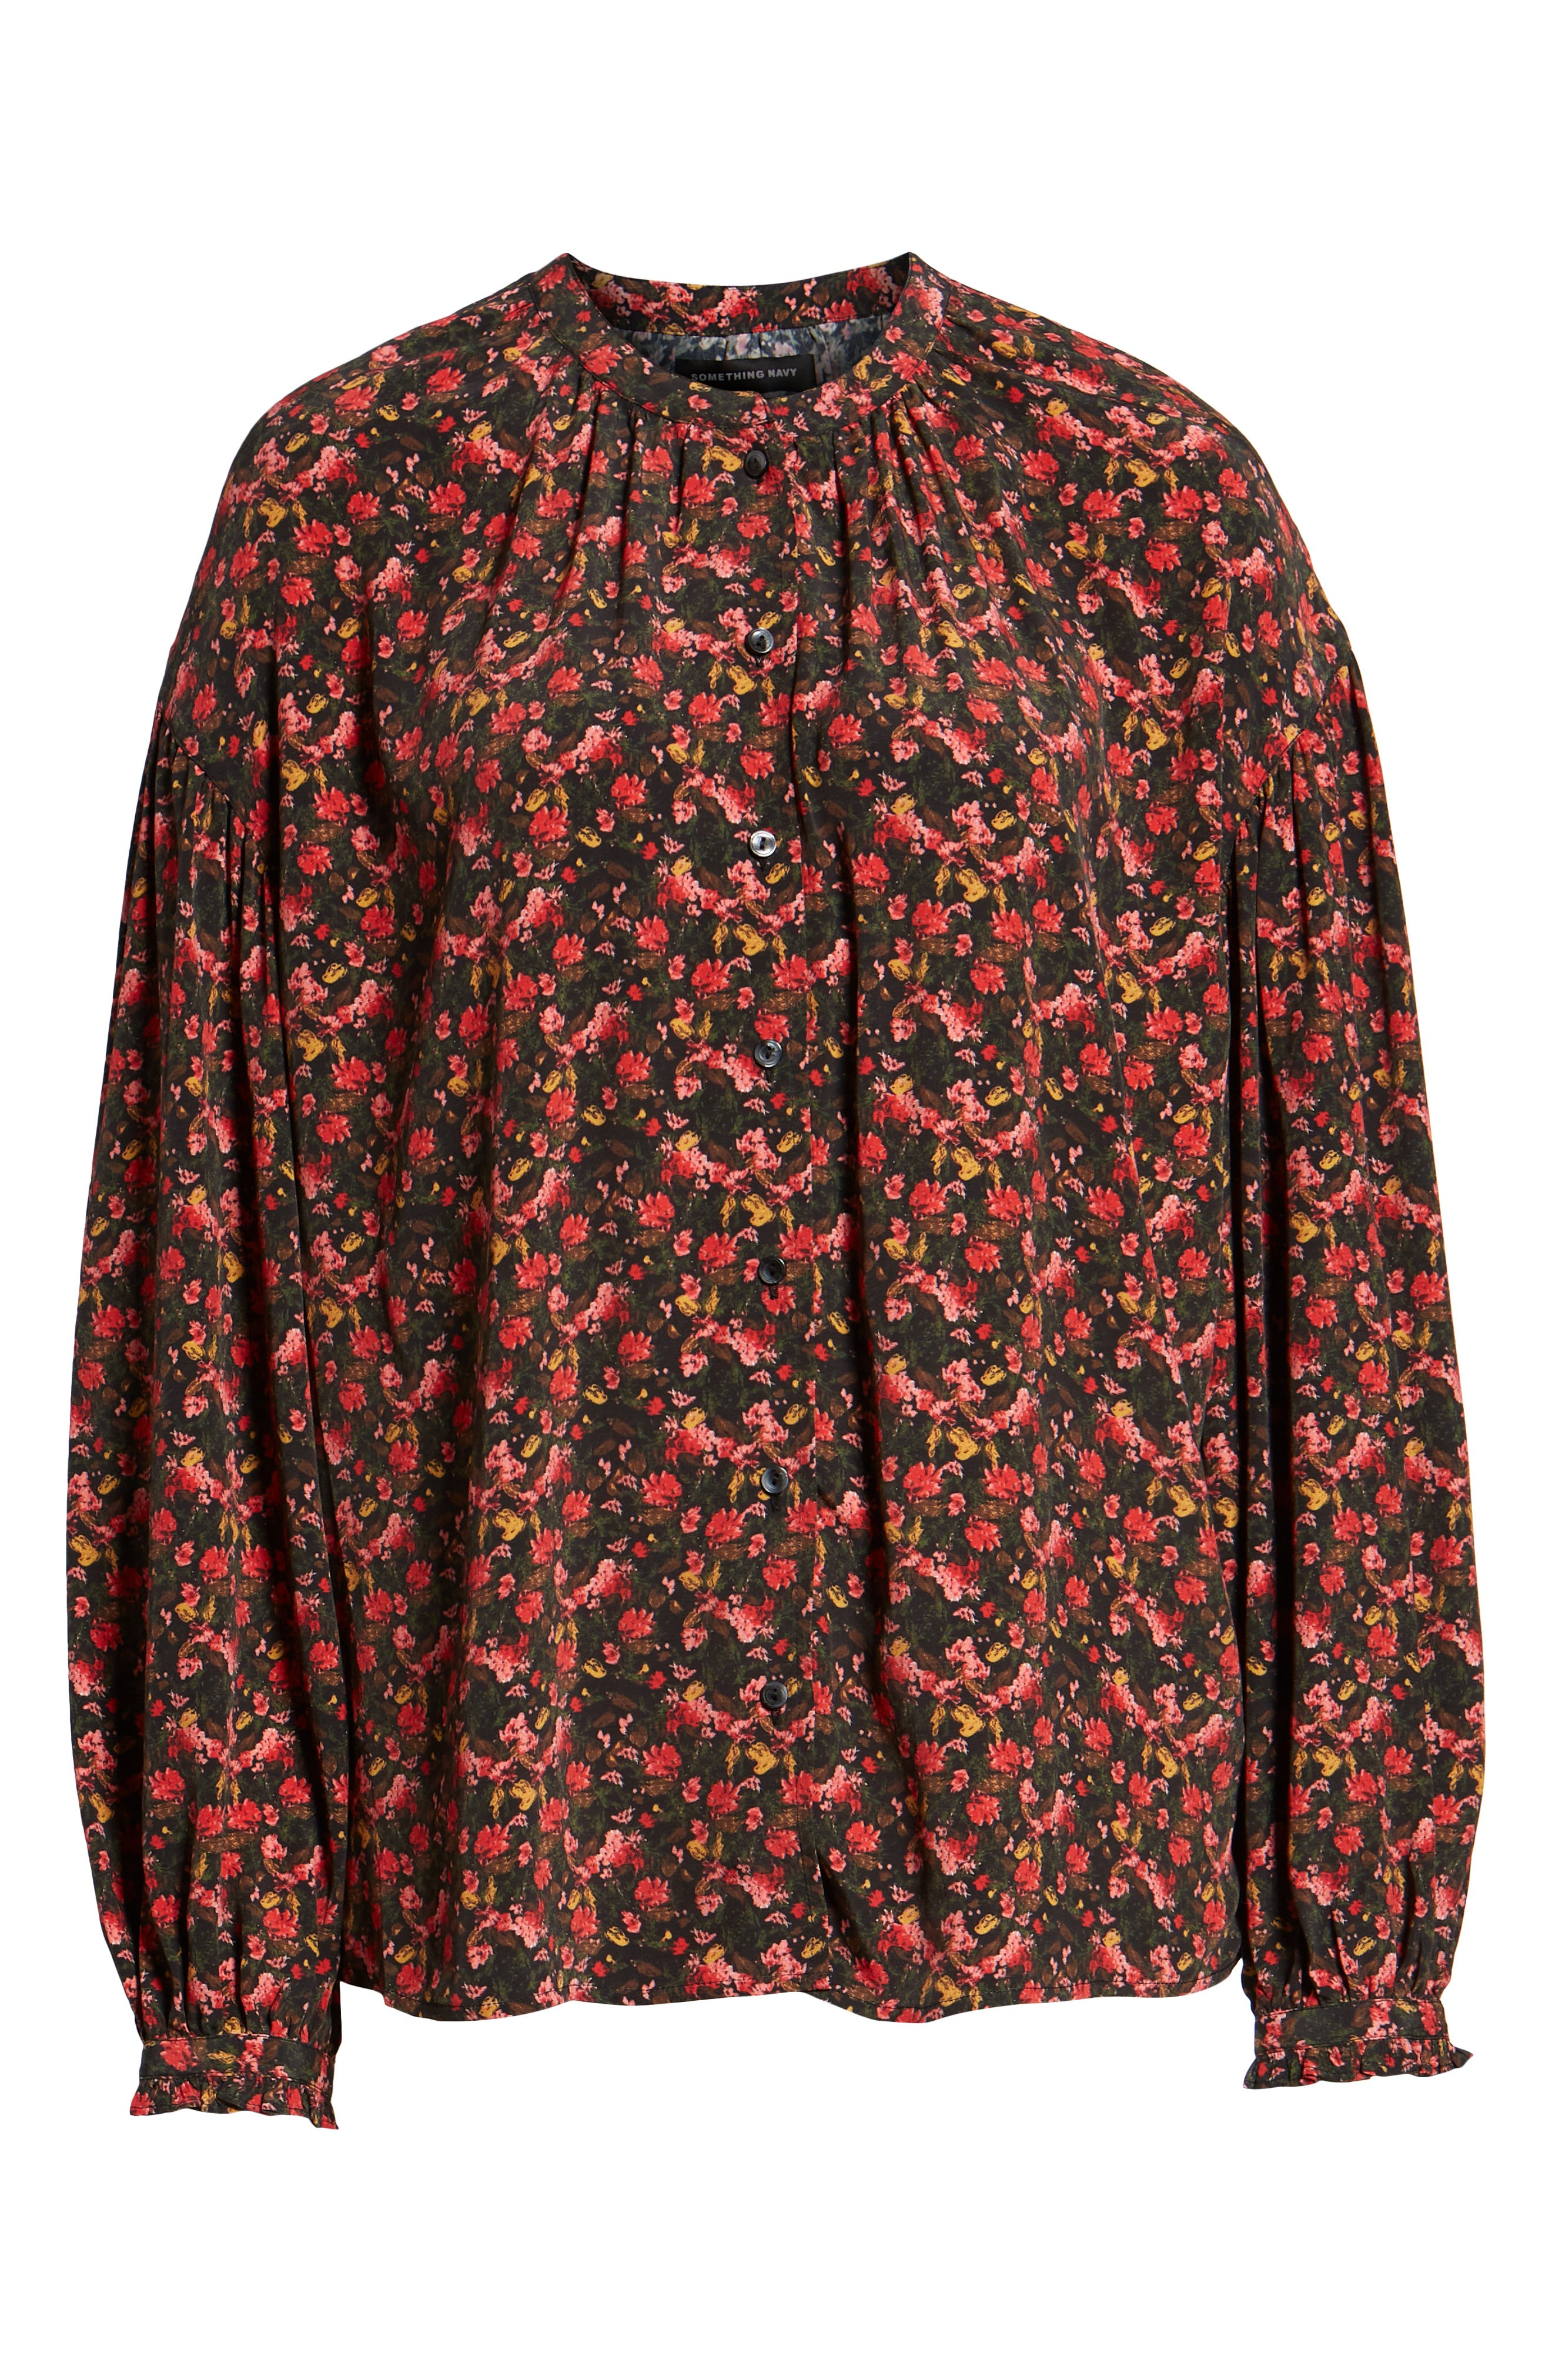 Easy Volume Top,                             Alternate thumbnail 7, color,                             RED BLAZE PAINTERLY FLORAL